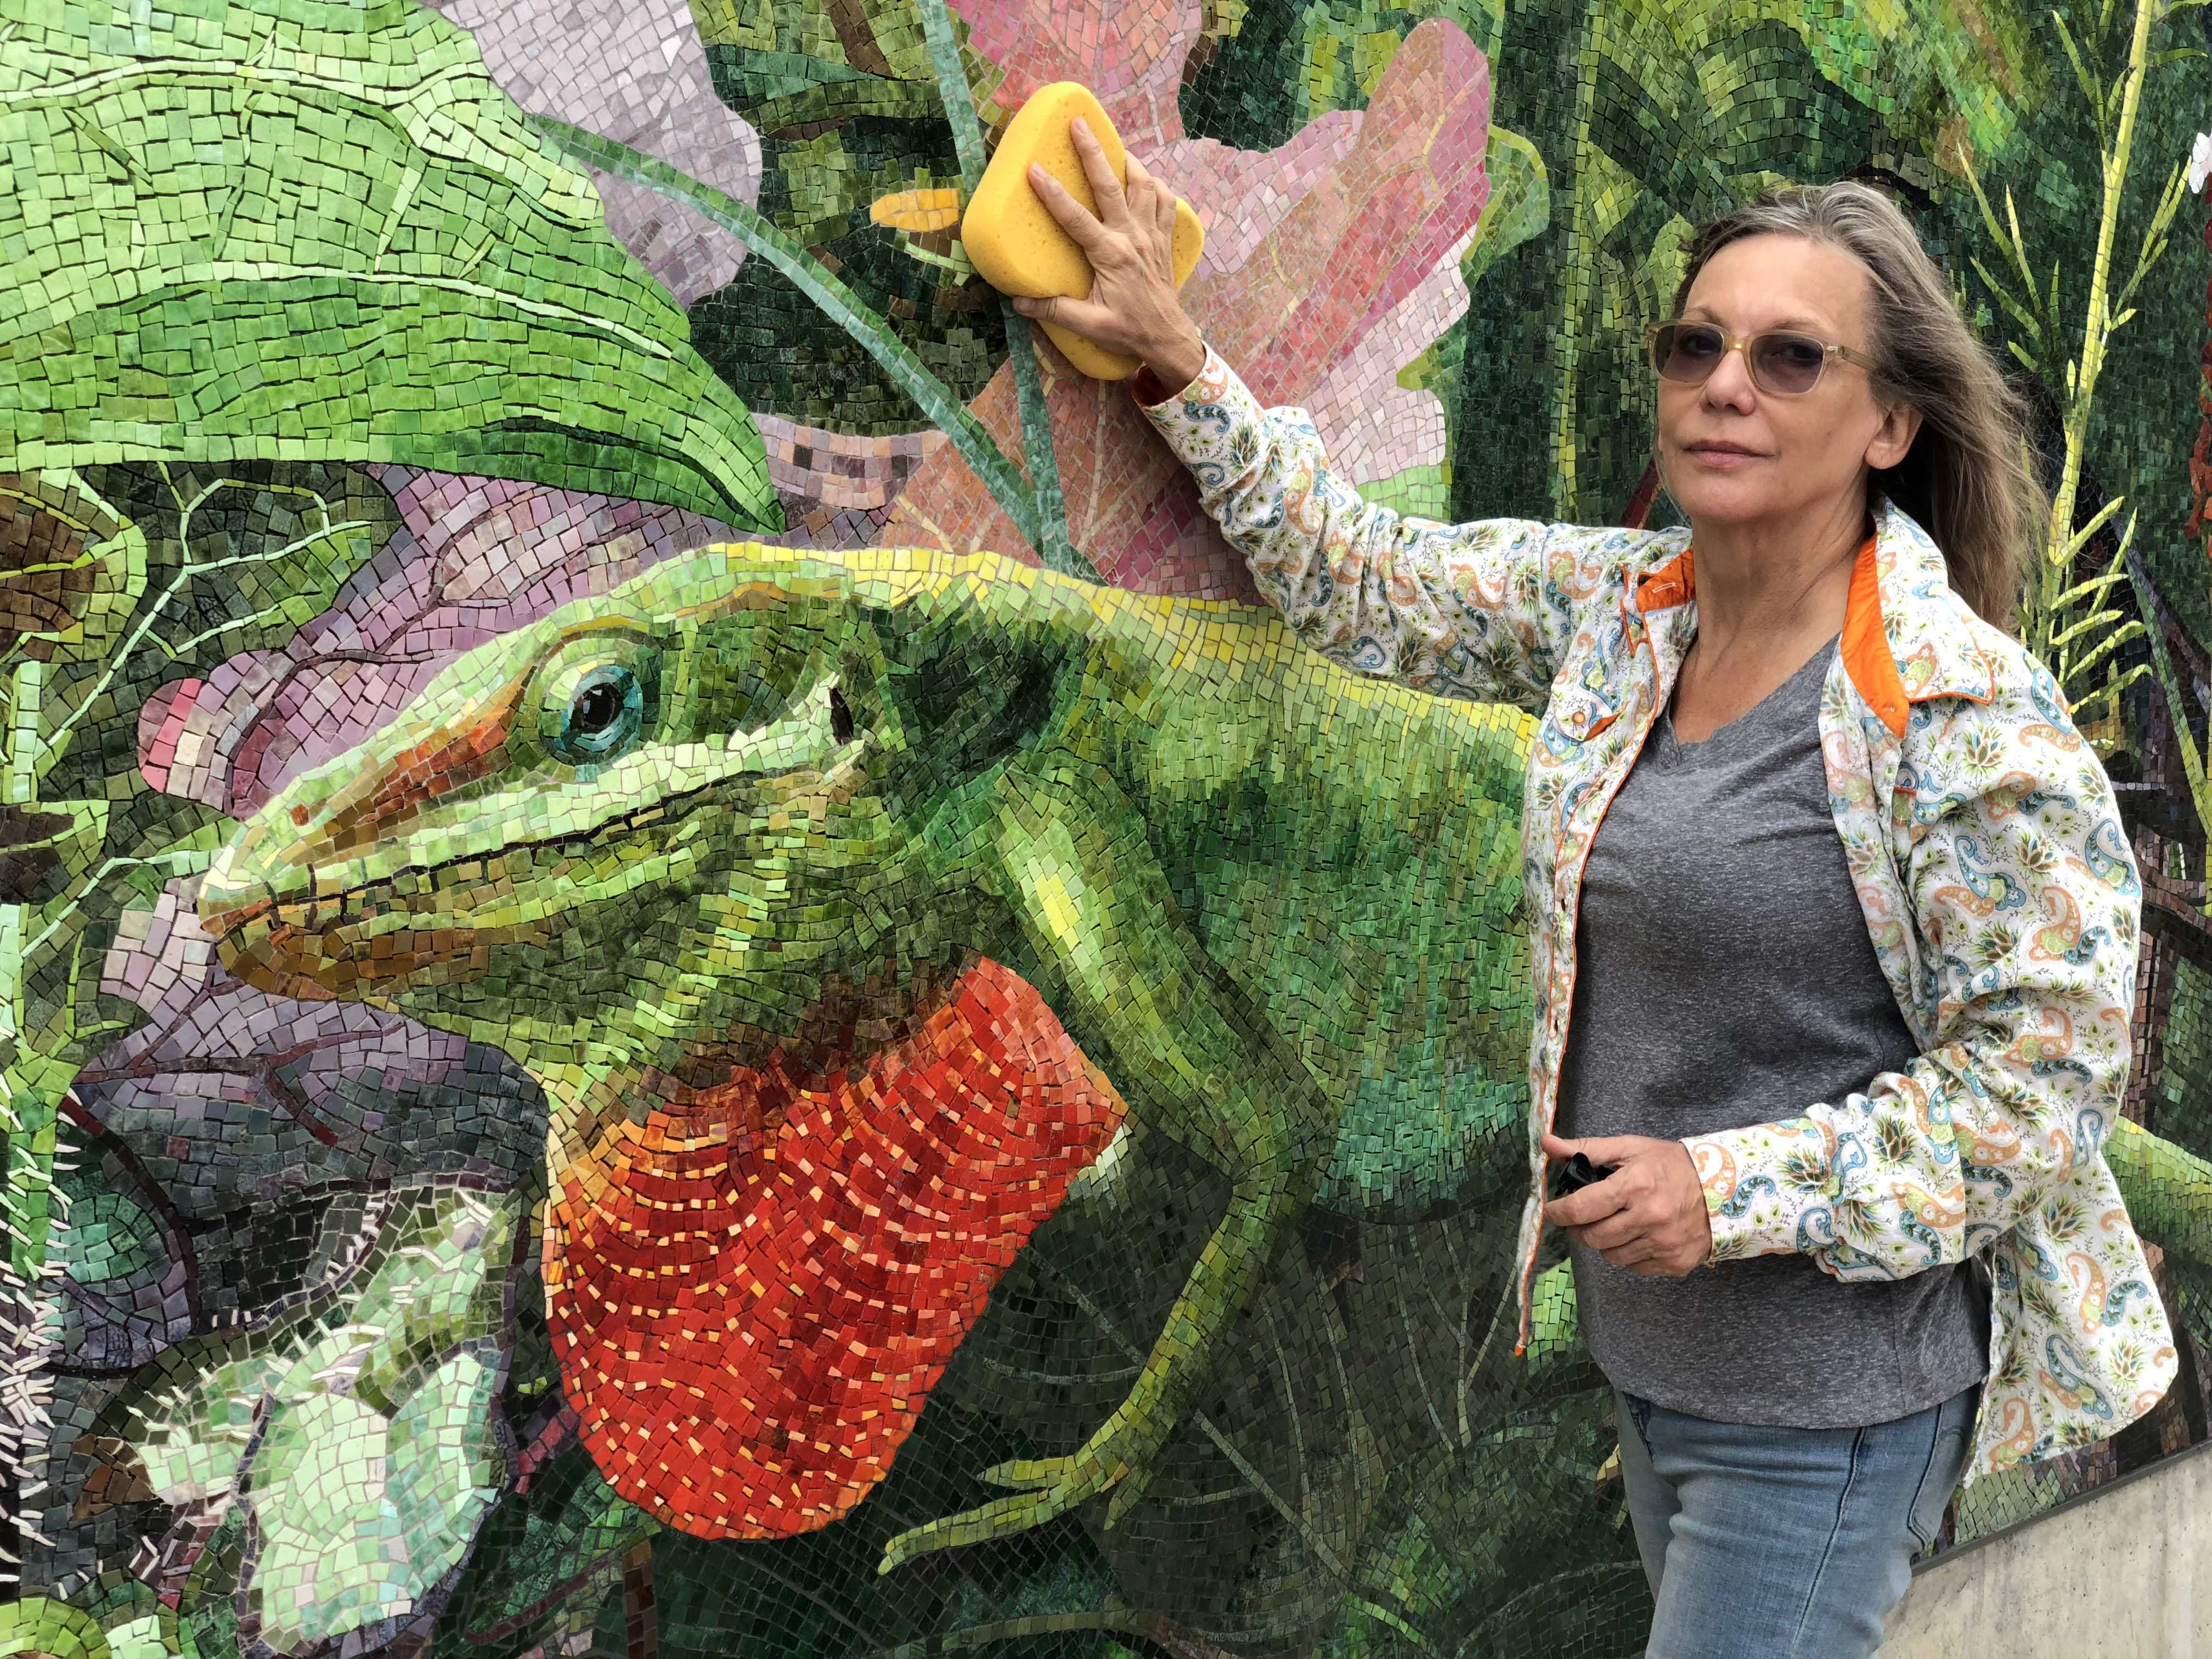 <div class='meta'><div class='origin-logo' data-origin='none'></div><span class='caption-text' data-credit=''>Dixie Friend Gay, HARF Grant Recipient, behind the scenes at her latest project in Midtown Park. (Photo Credits: Sandy Wilson)</span></div>